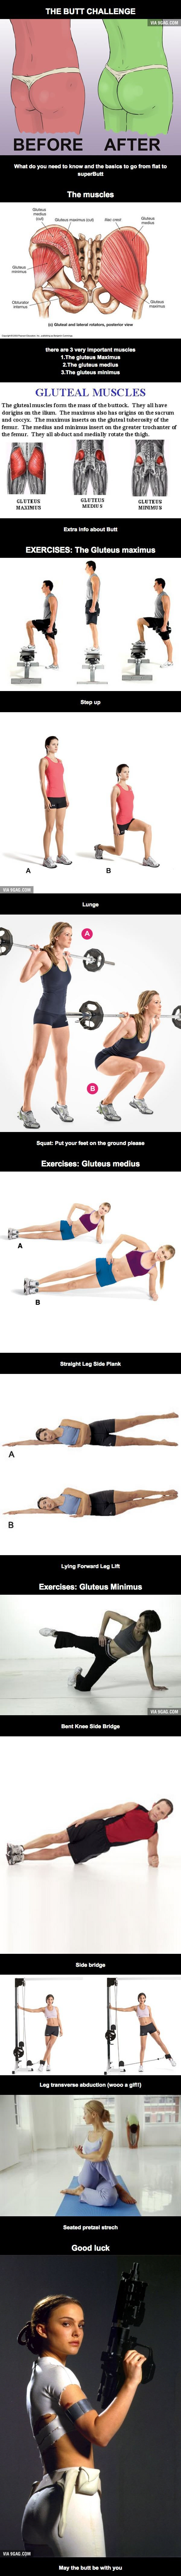 Exercises to strengthen your glutes and tone your butt